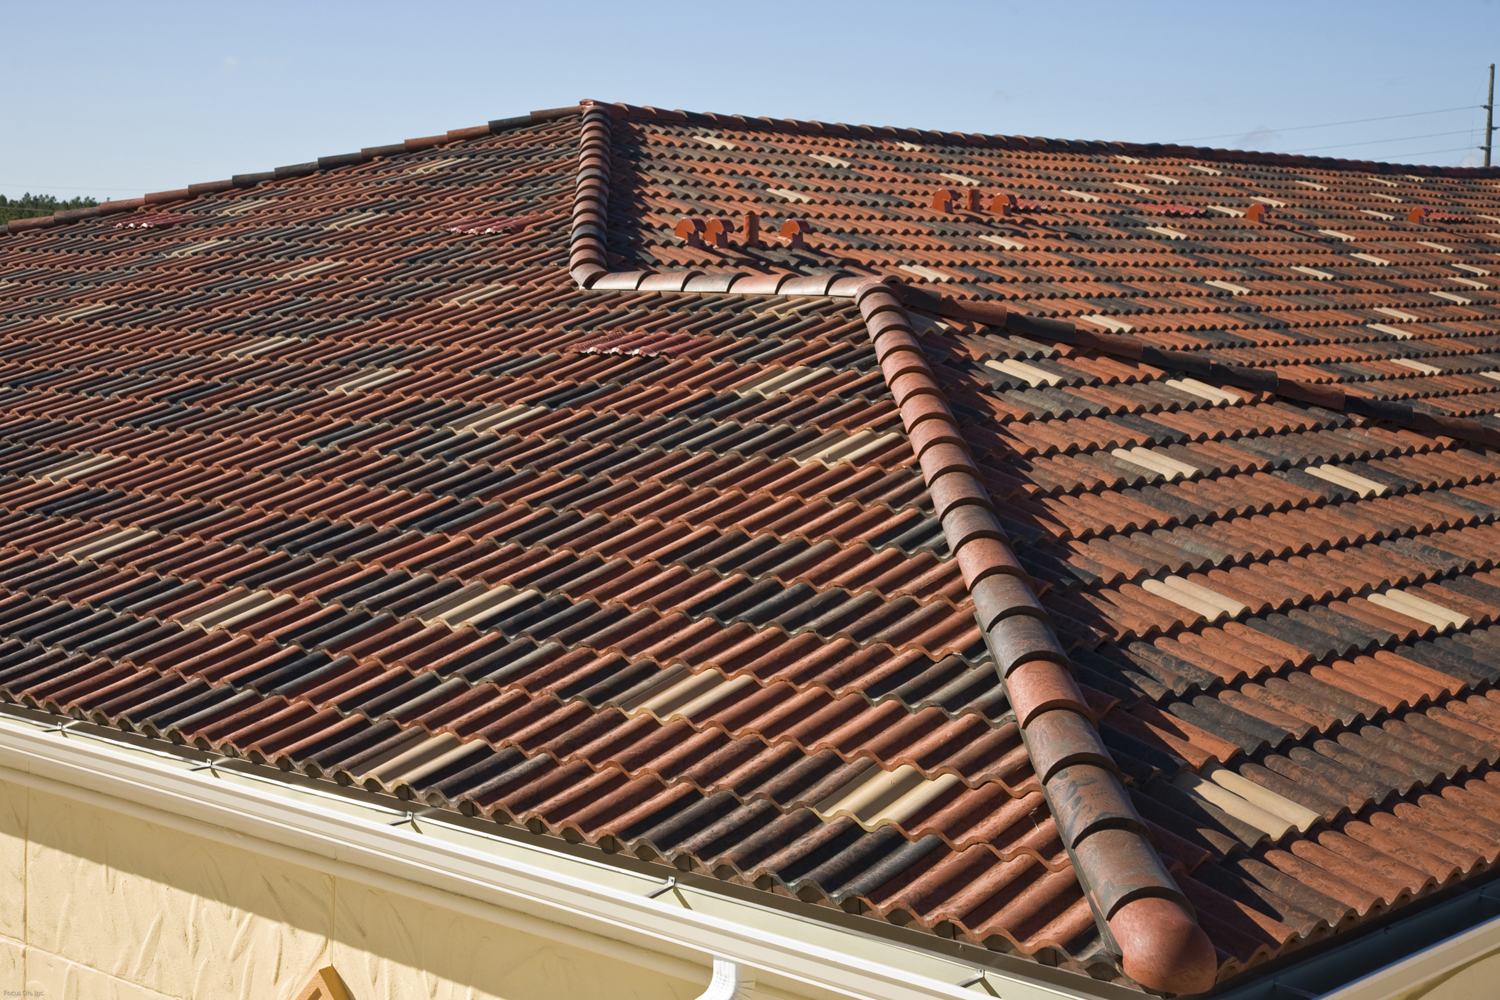 24 Hour Emergency Roof Repair Near Me Florissant, MO 63033